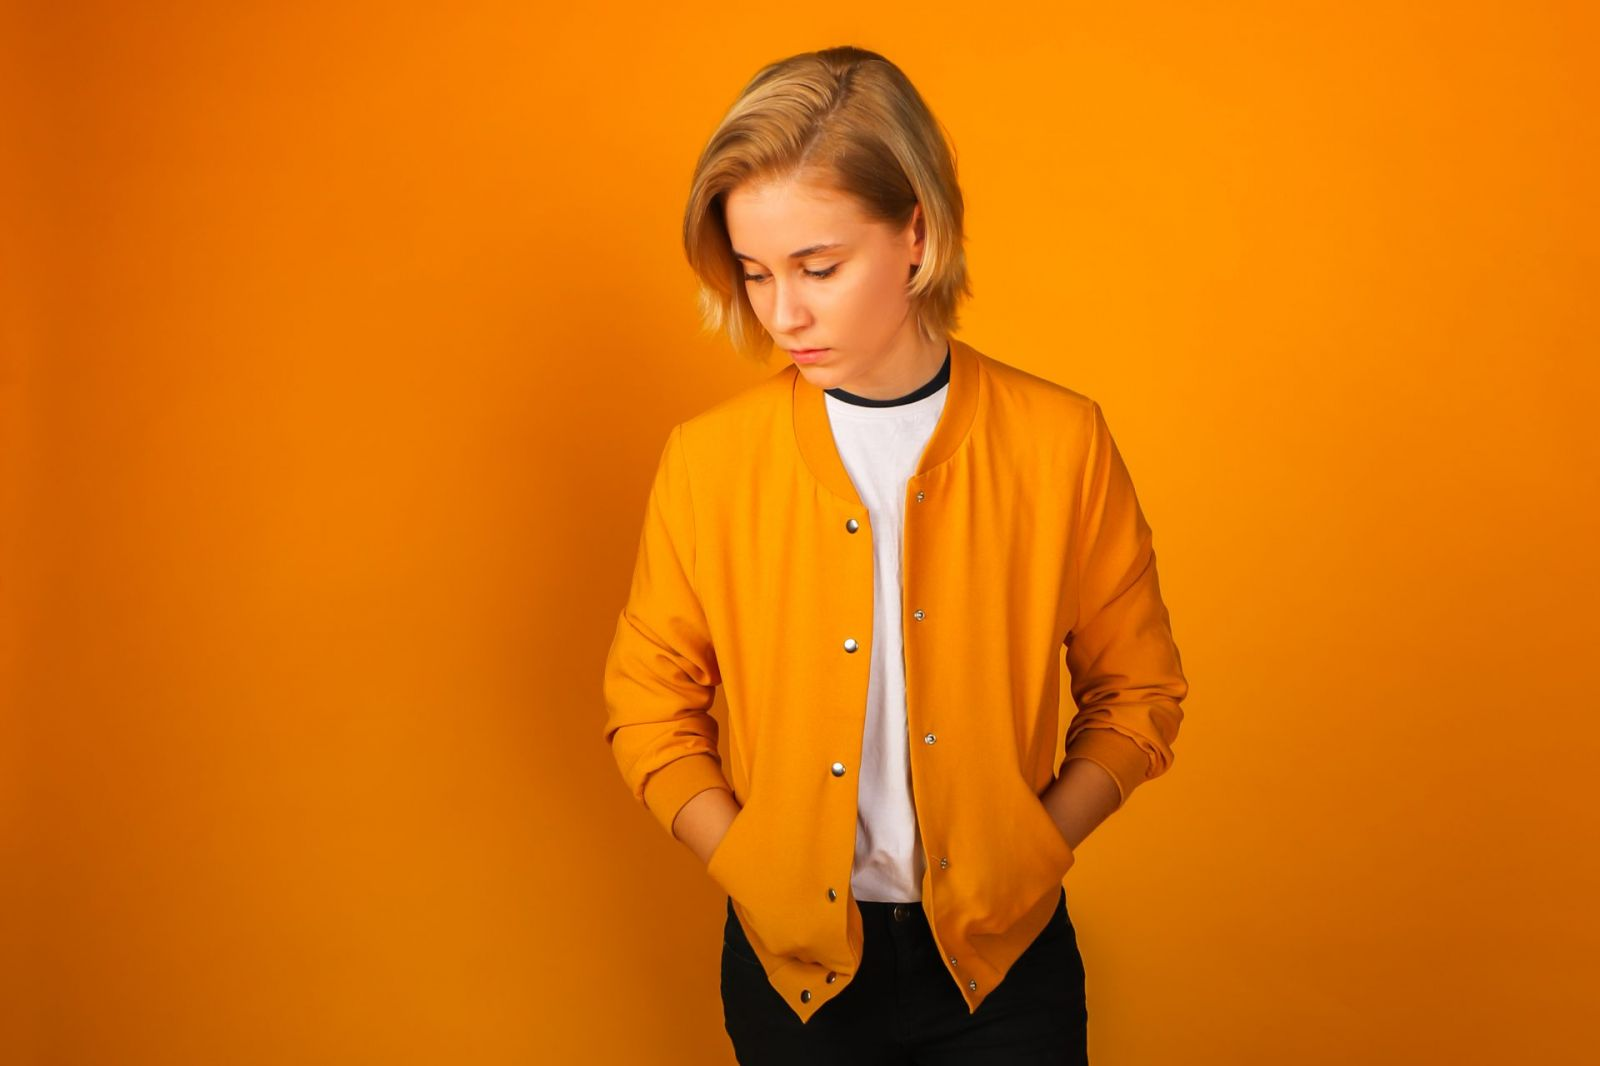 Fashion Portrait Girl in Yellow on Yellow Background